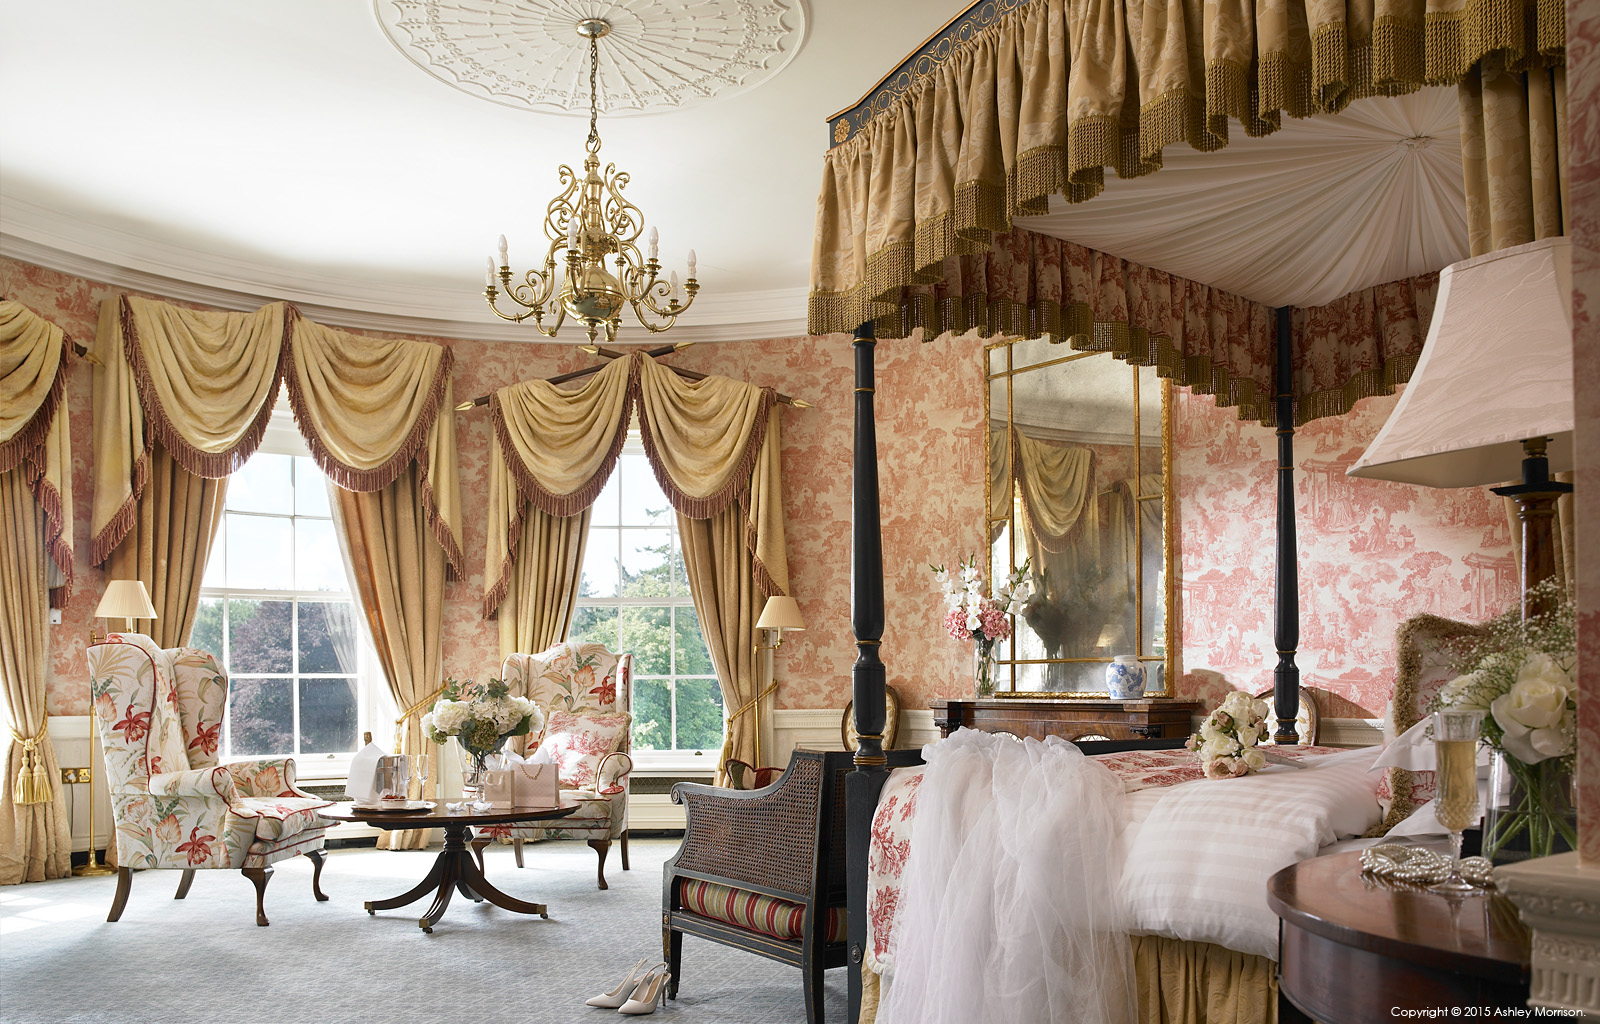 The Viceroy Suite at the Kildare Hotel Spa & Golf Club near Straffan in County Kildare.